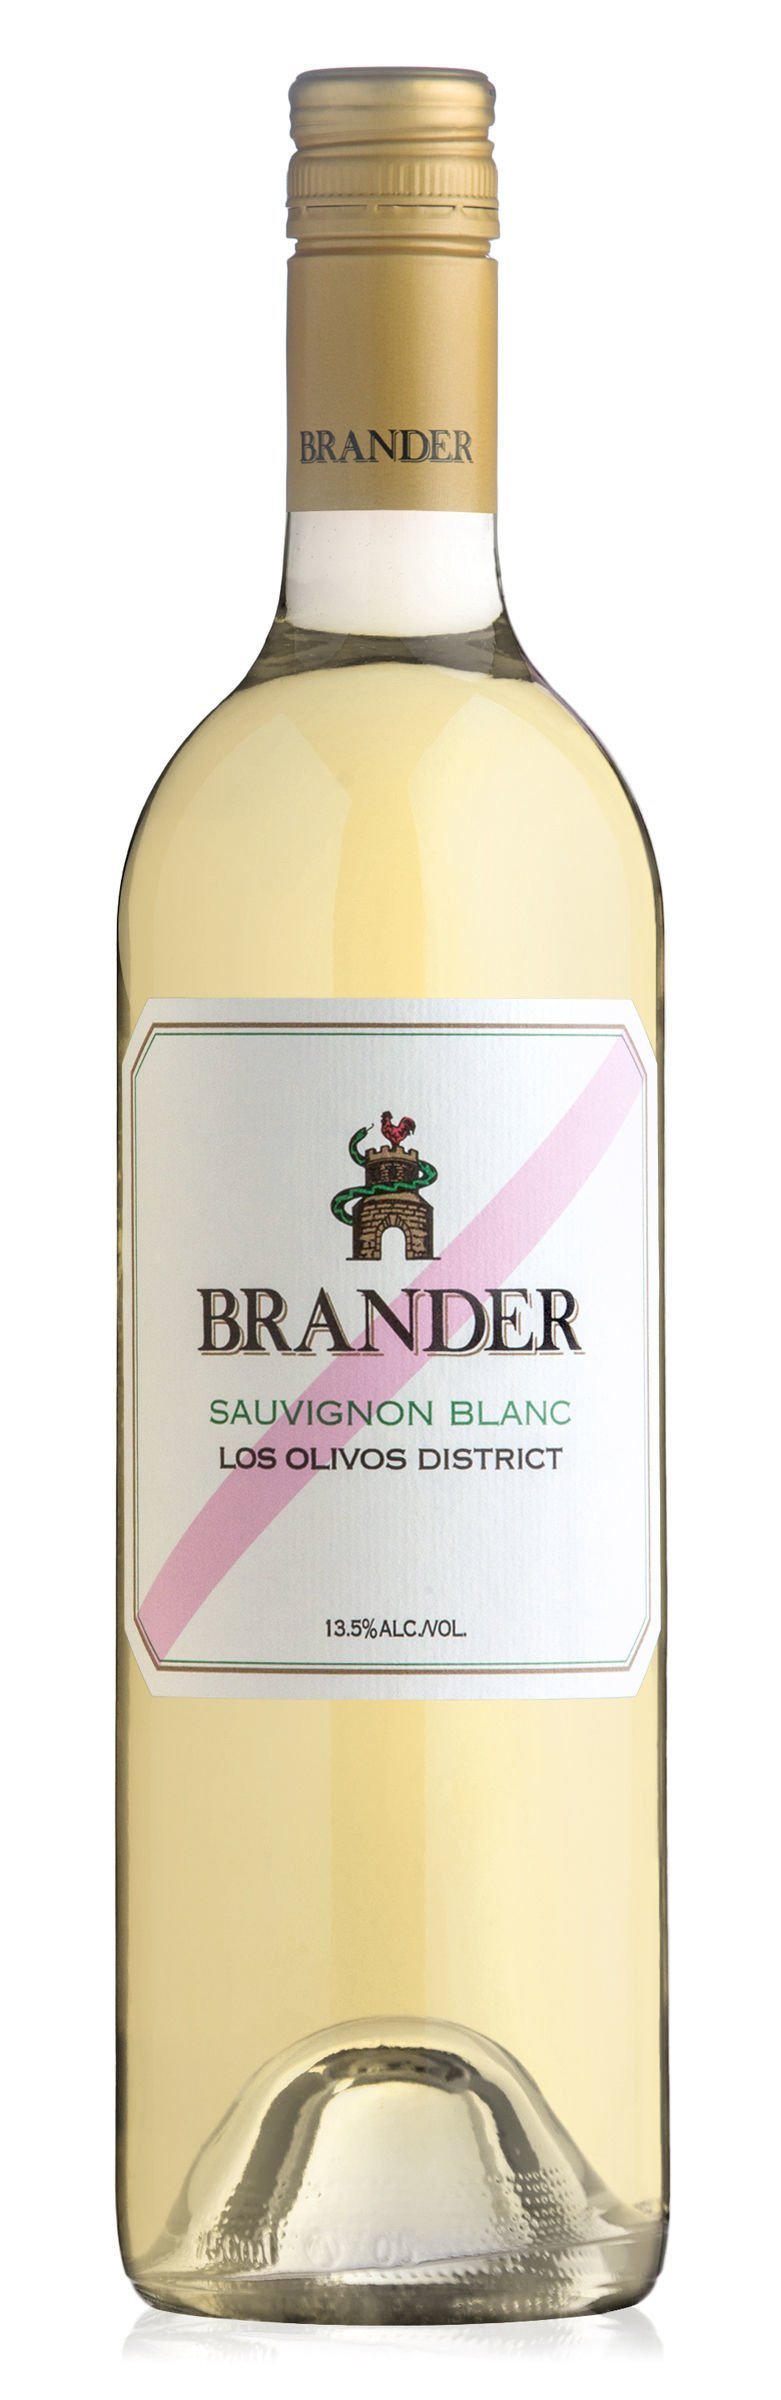 42nd vintage of Brander Vineyard's flagship sauvignon blanc